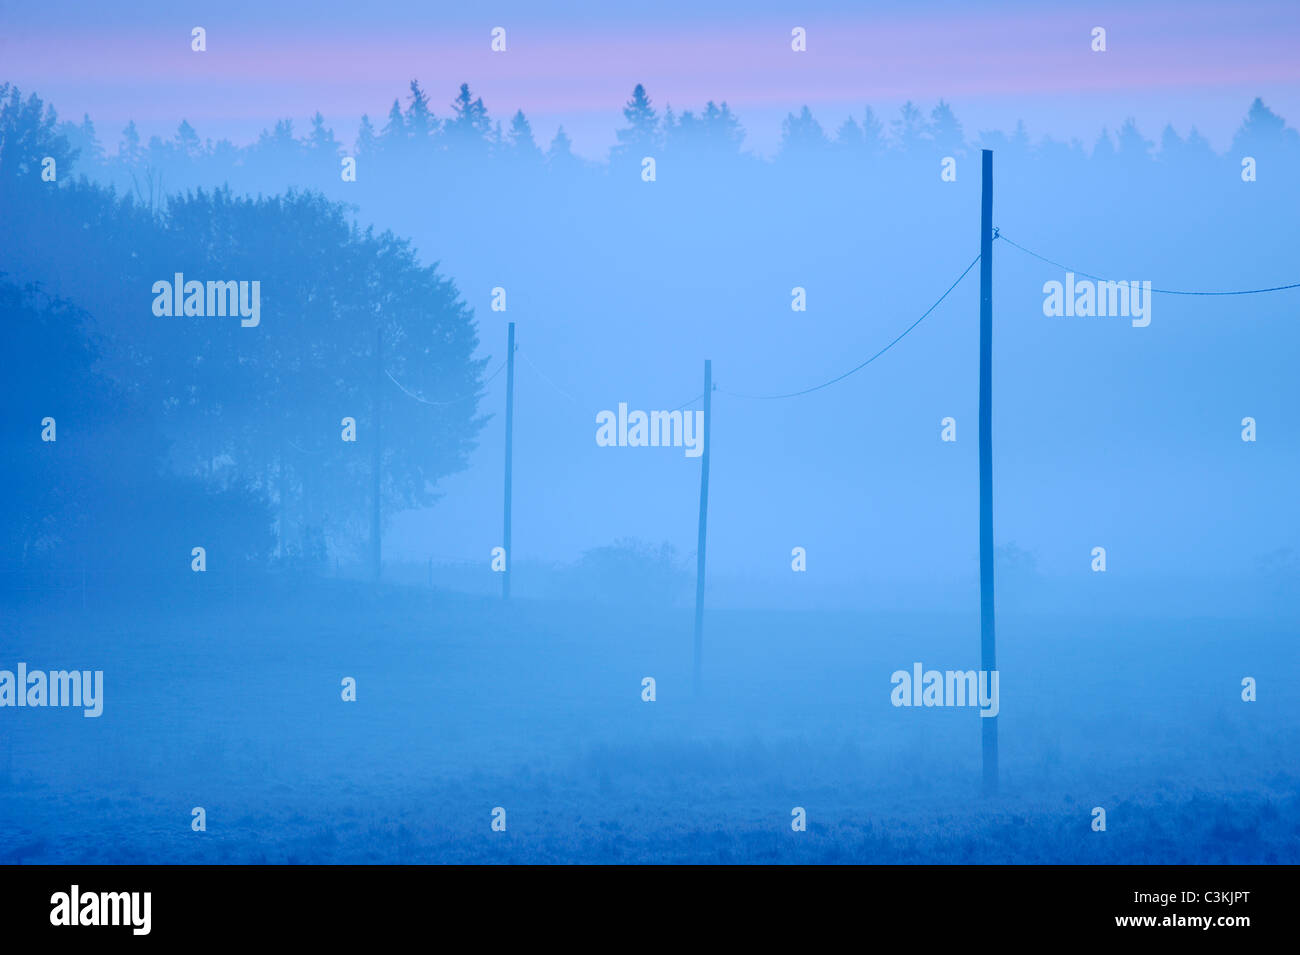 Row of electricity poles on field in morning mist - Stock Image